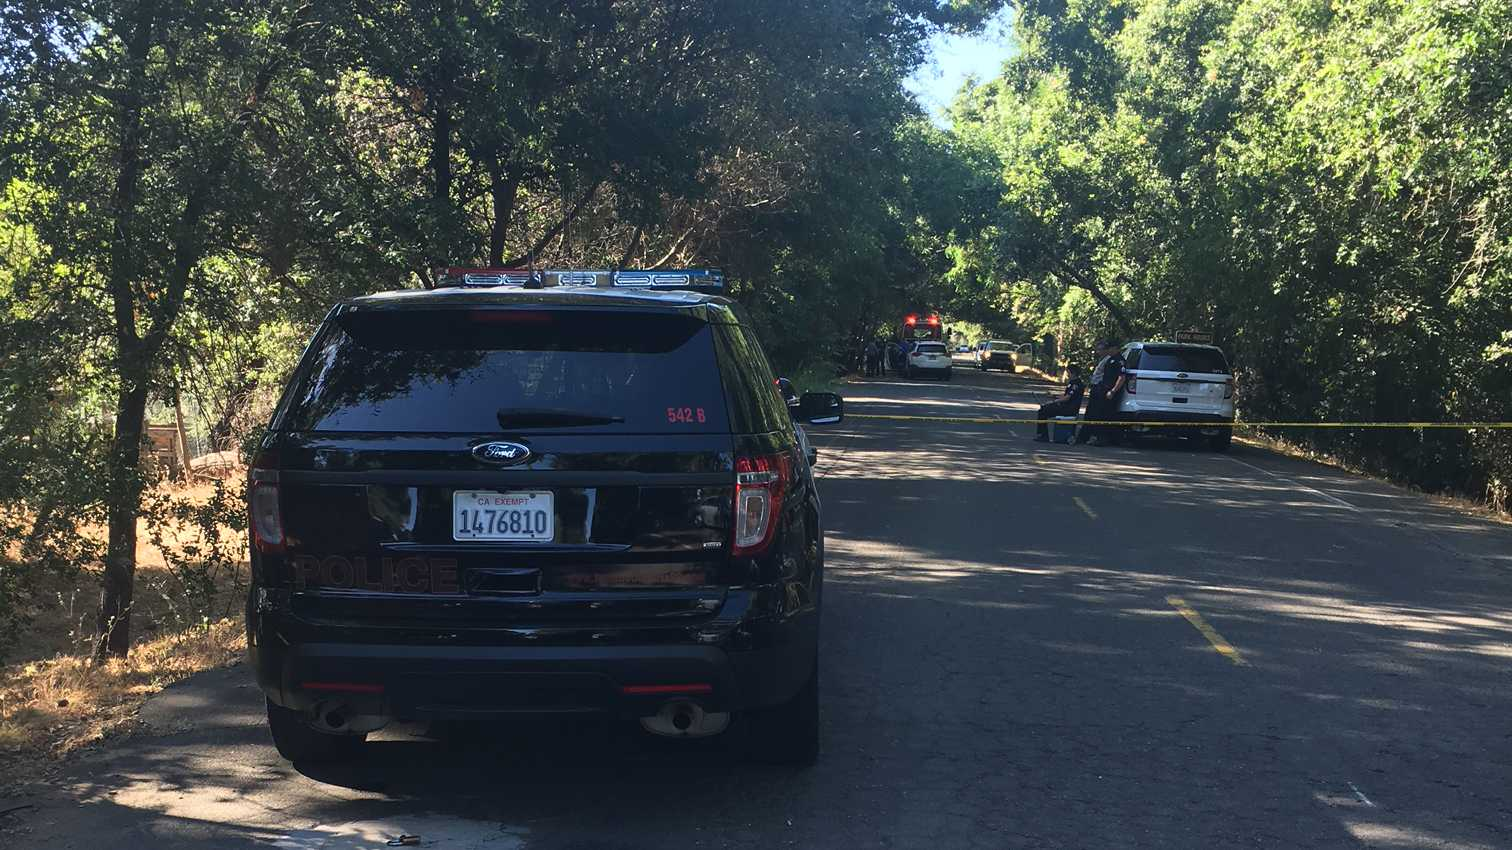 Rancho Cordova Police Investigating After Toddler Found Dead in Vehicle